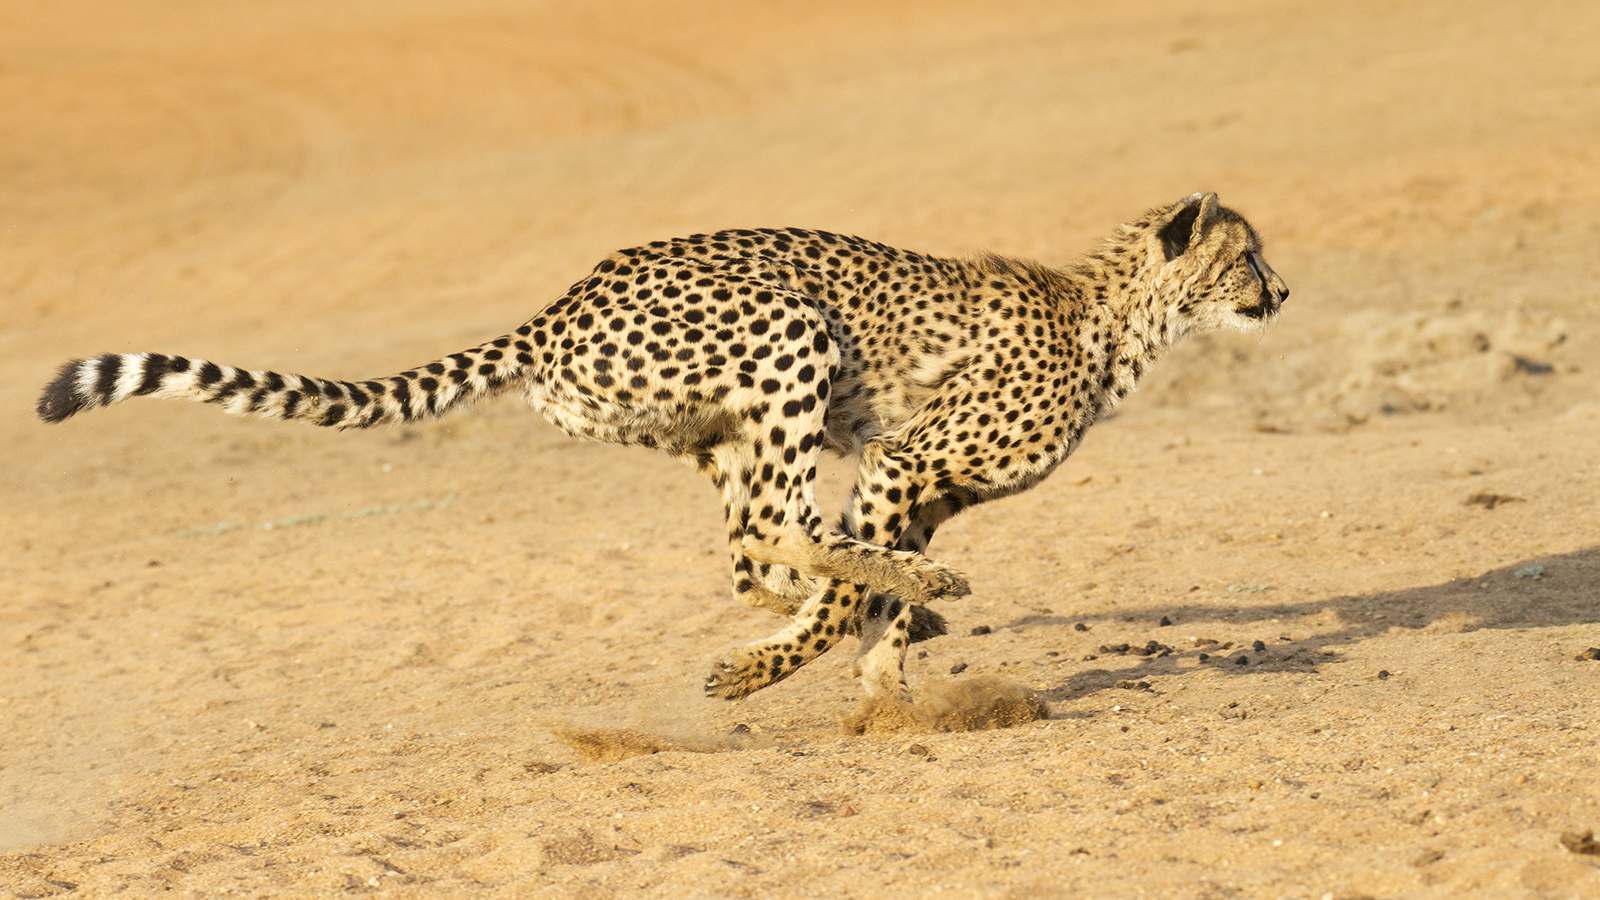 http://www.dreamstime.com/royalty-free-stock-photos-cheetah-running-acinonyx-jubatus-south-africa-image29434738